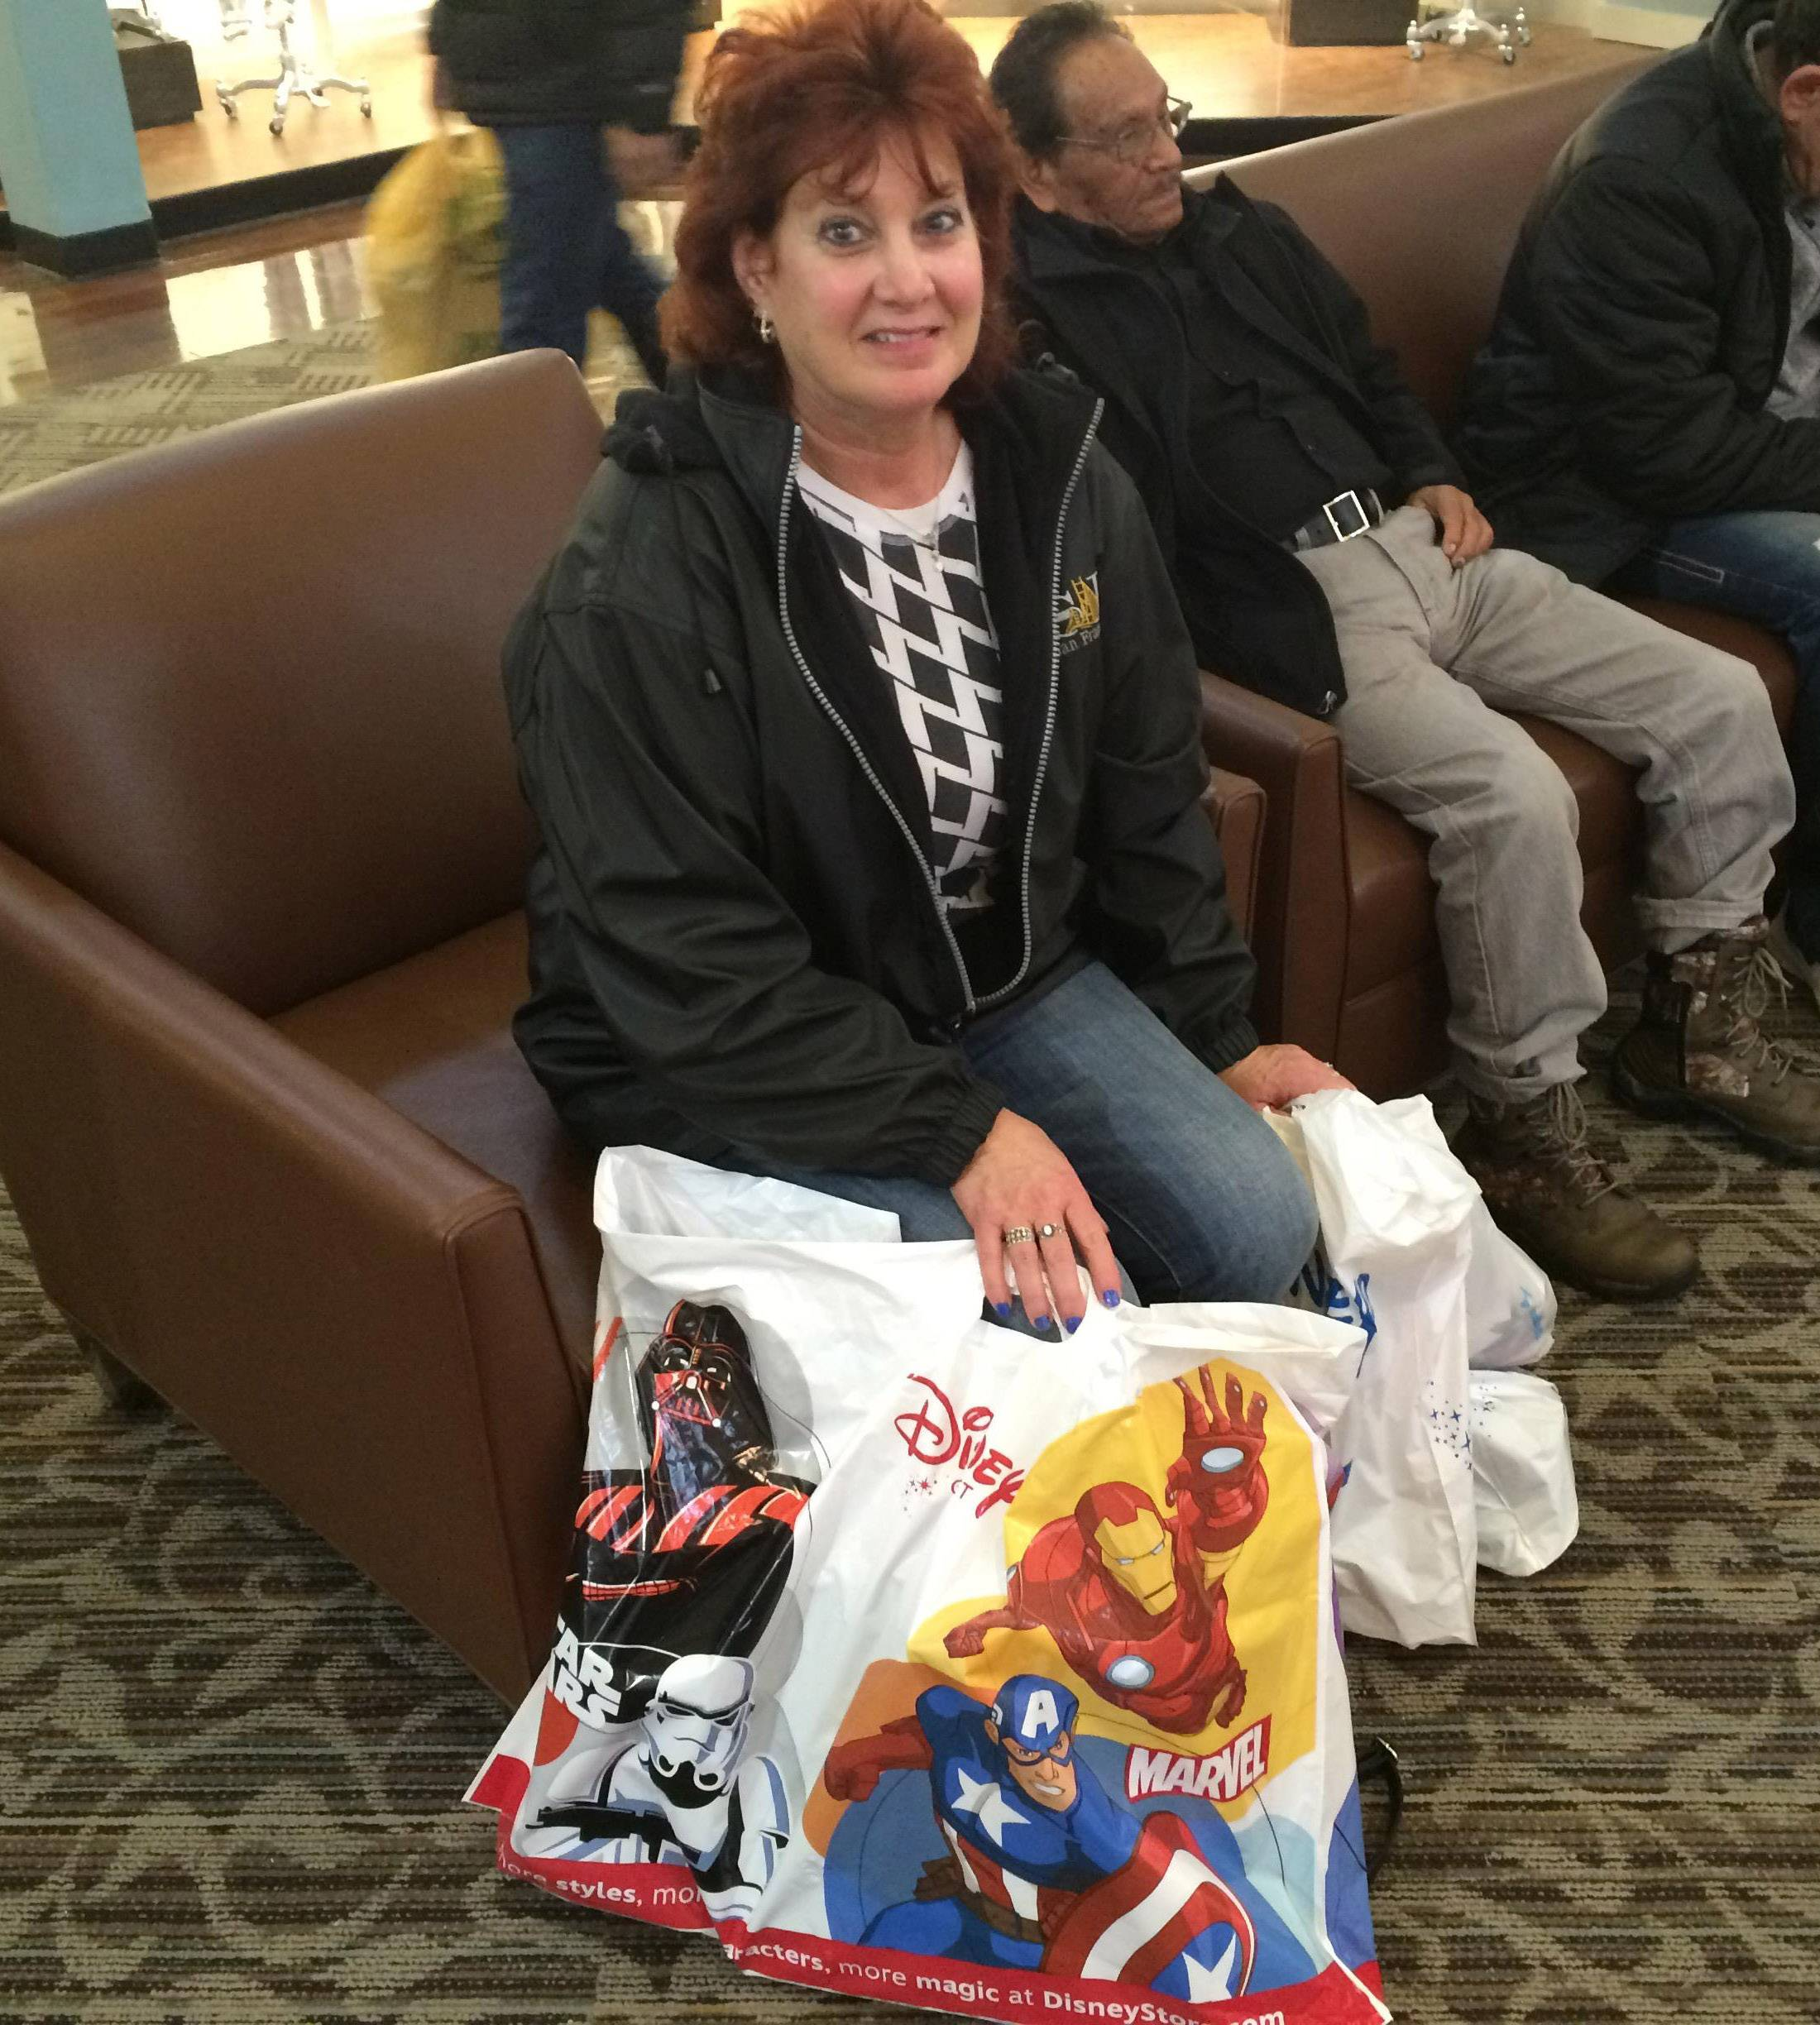 Debbie Stigler of McHenry said she arrived at Gurnee Mills at 7 a.m. Friday — one hour after the mall doors opened — to grab deals on a dehydrator and clothes at Bass Pro Shop.